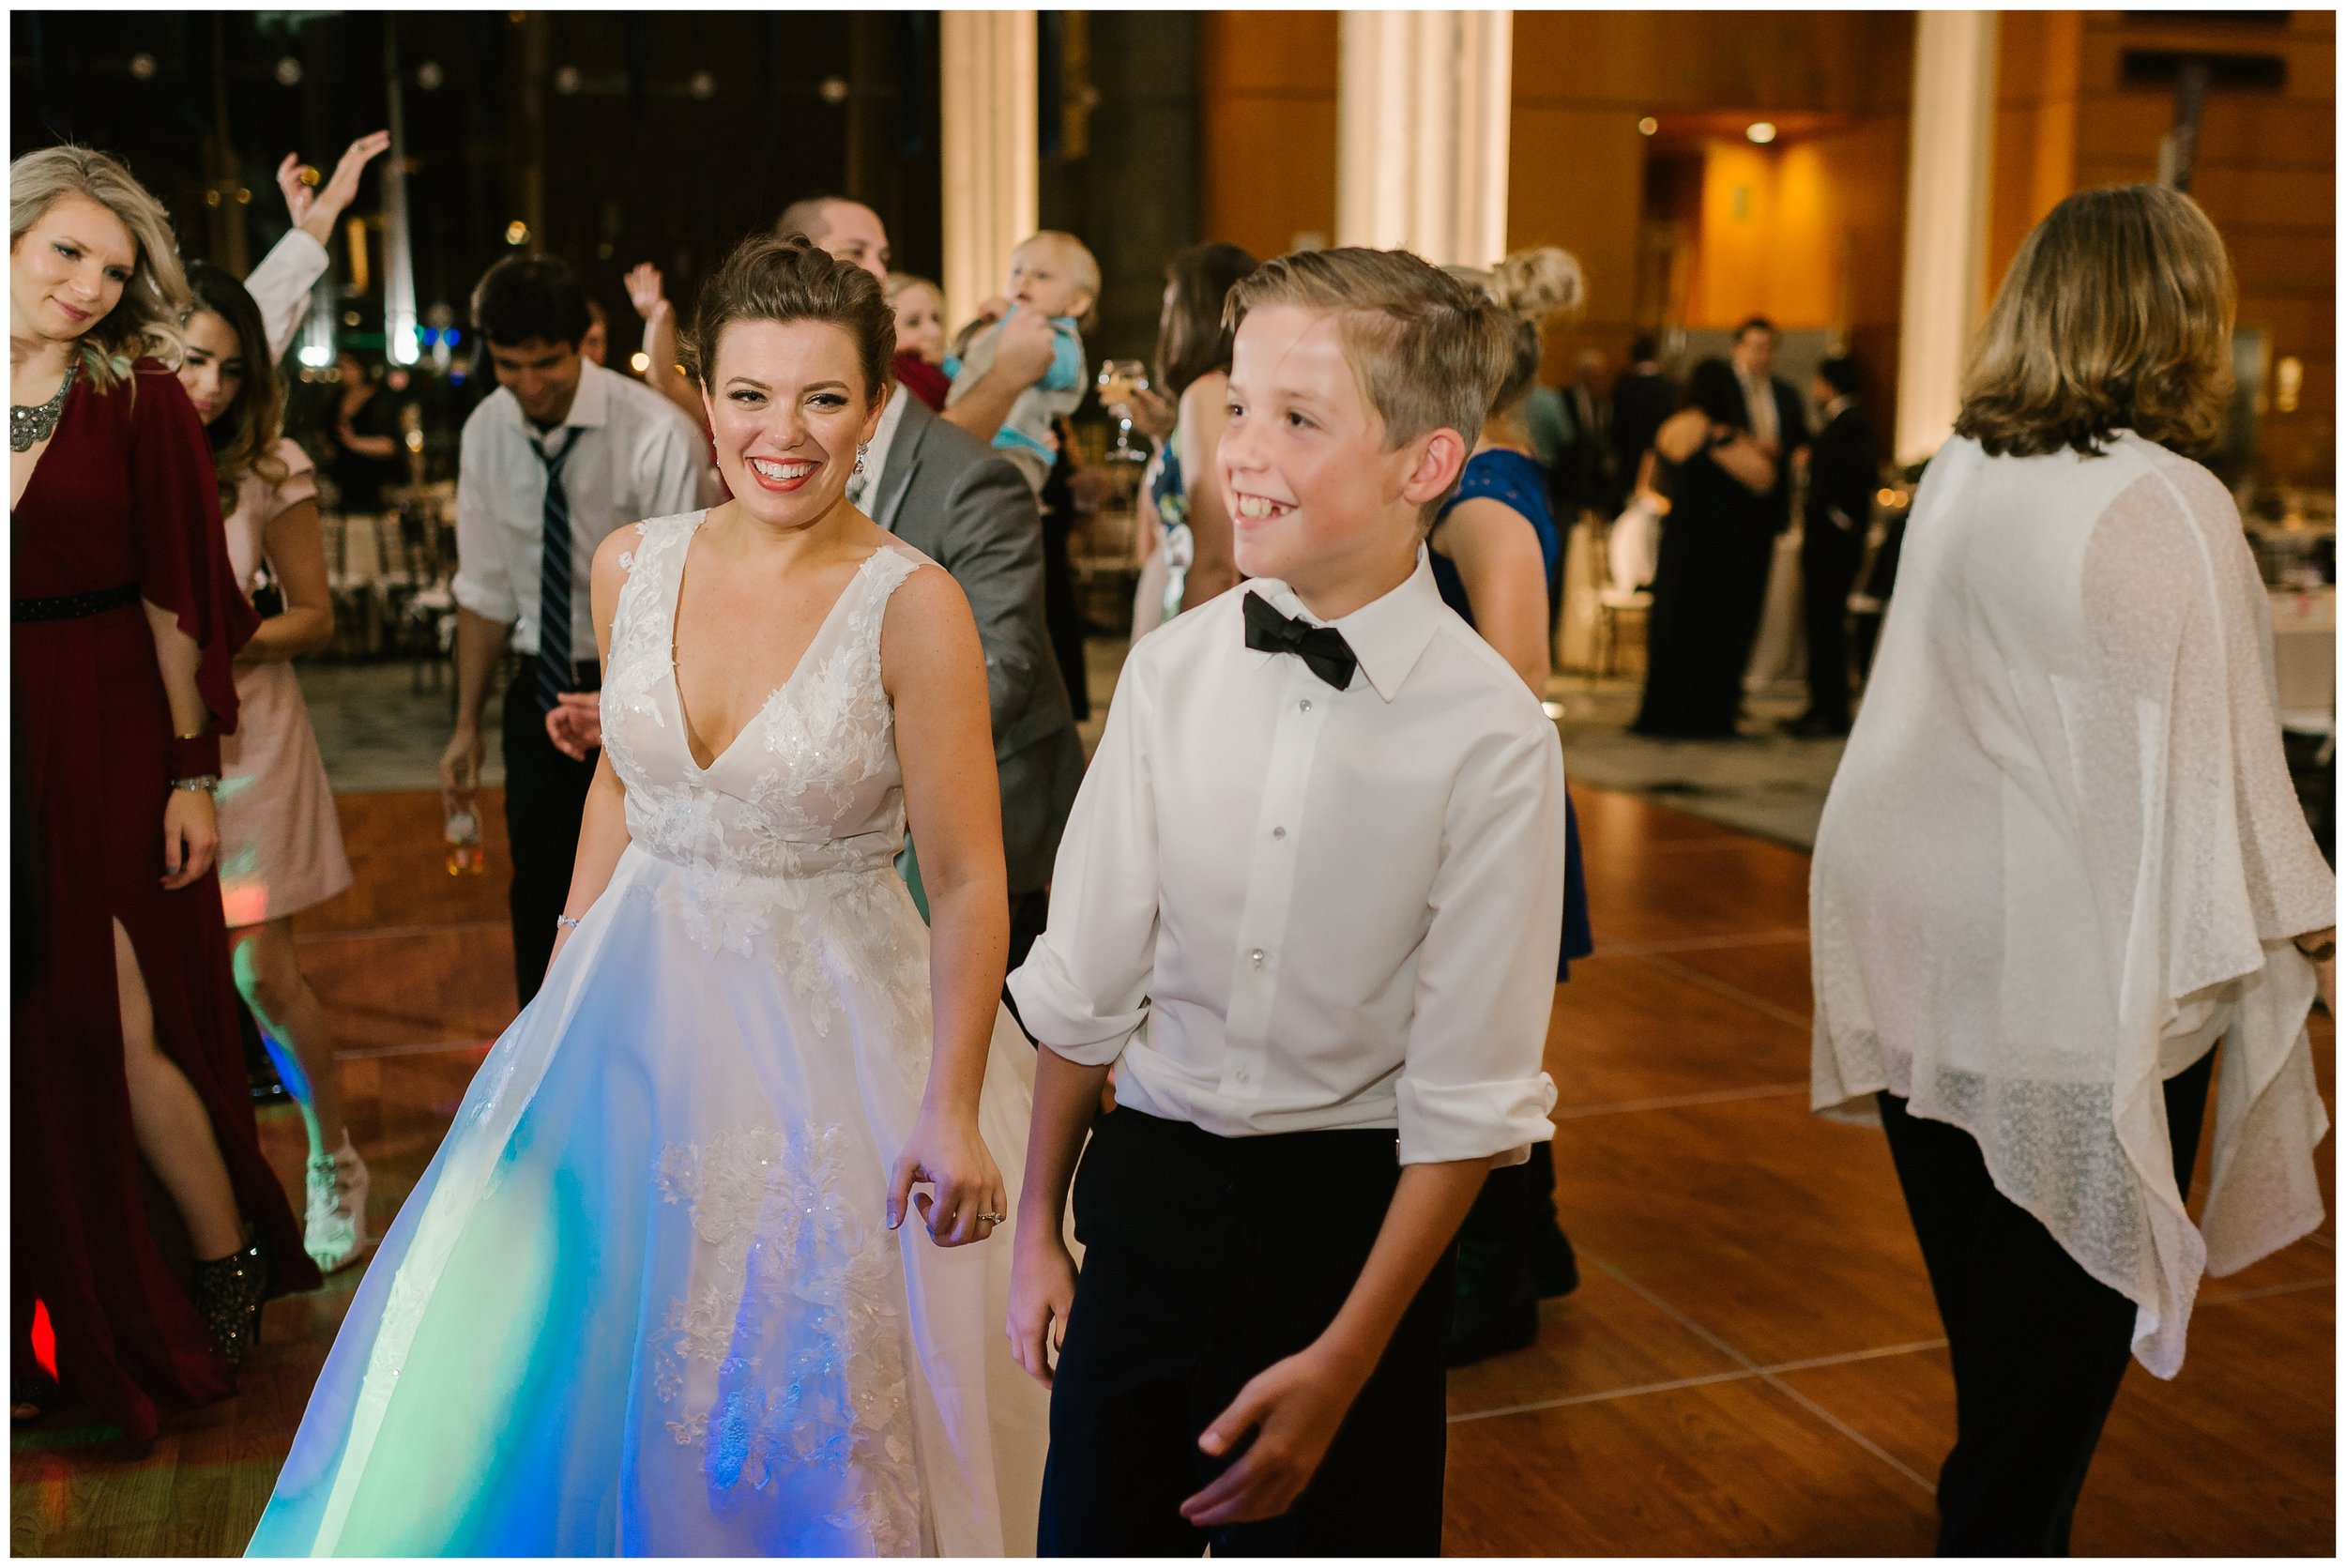 Rebecca_Shehorn_Photography_Indianapolis_Wedding_Photographer_7805.jpg